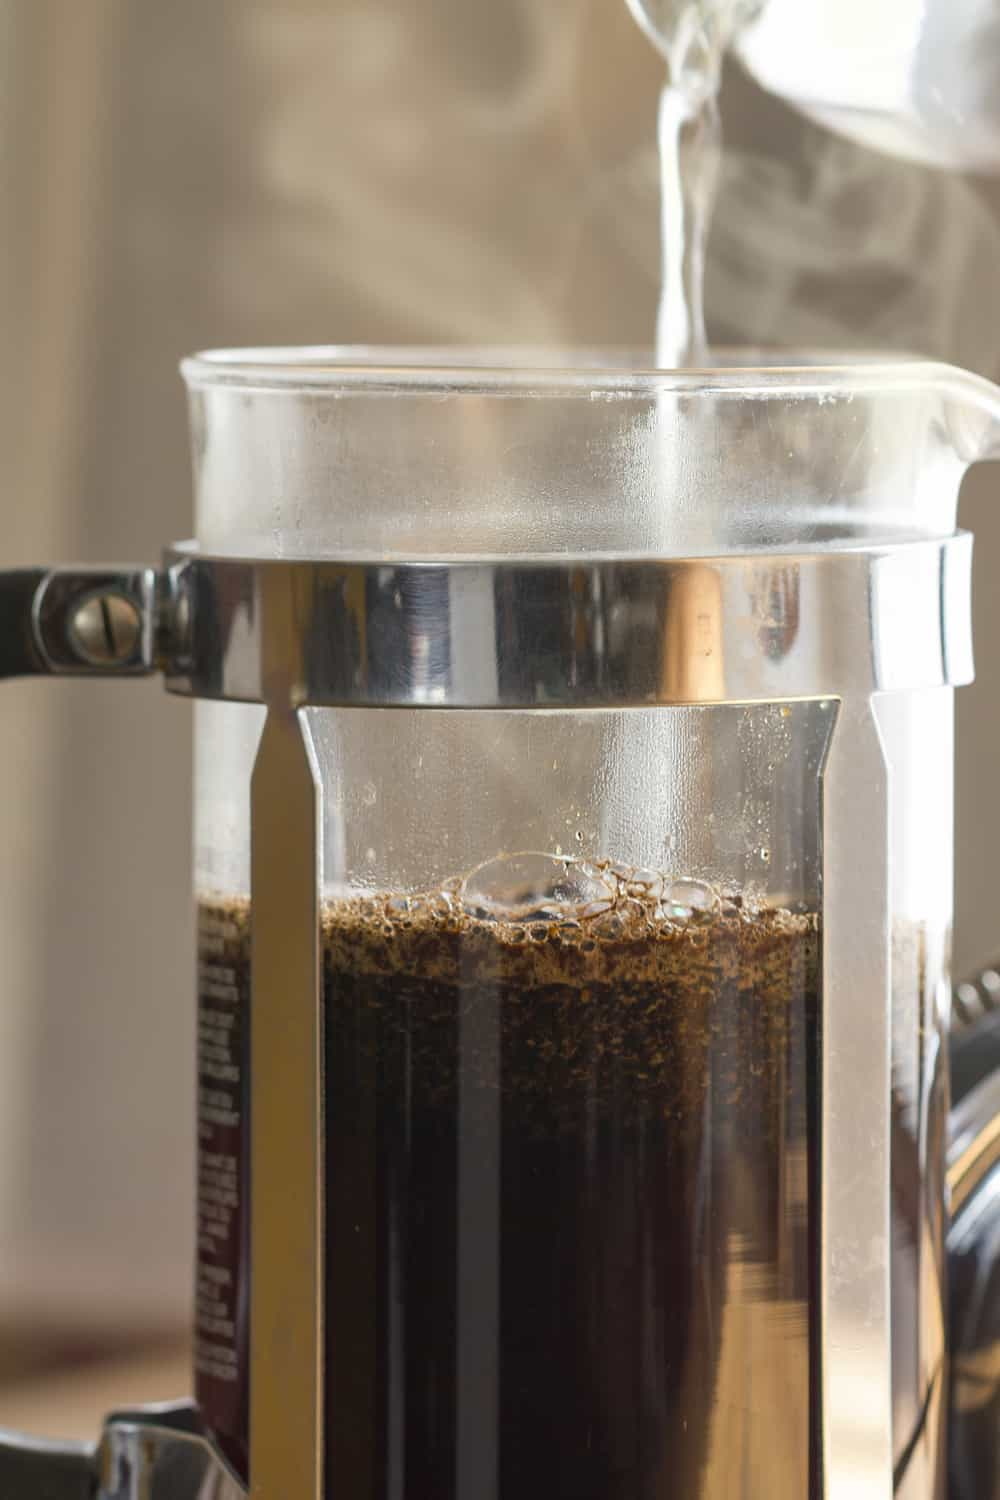 Large French Press